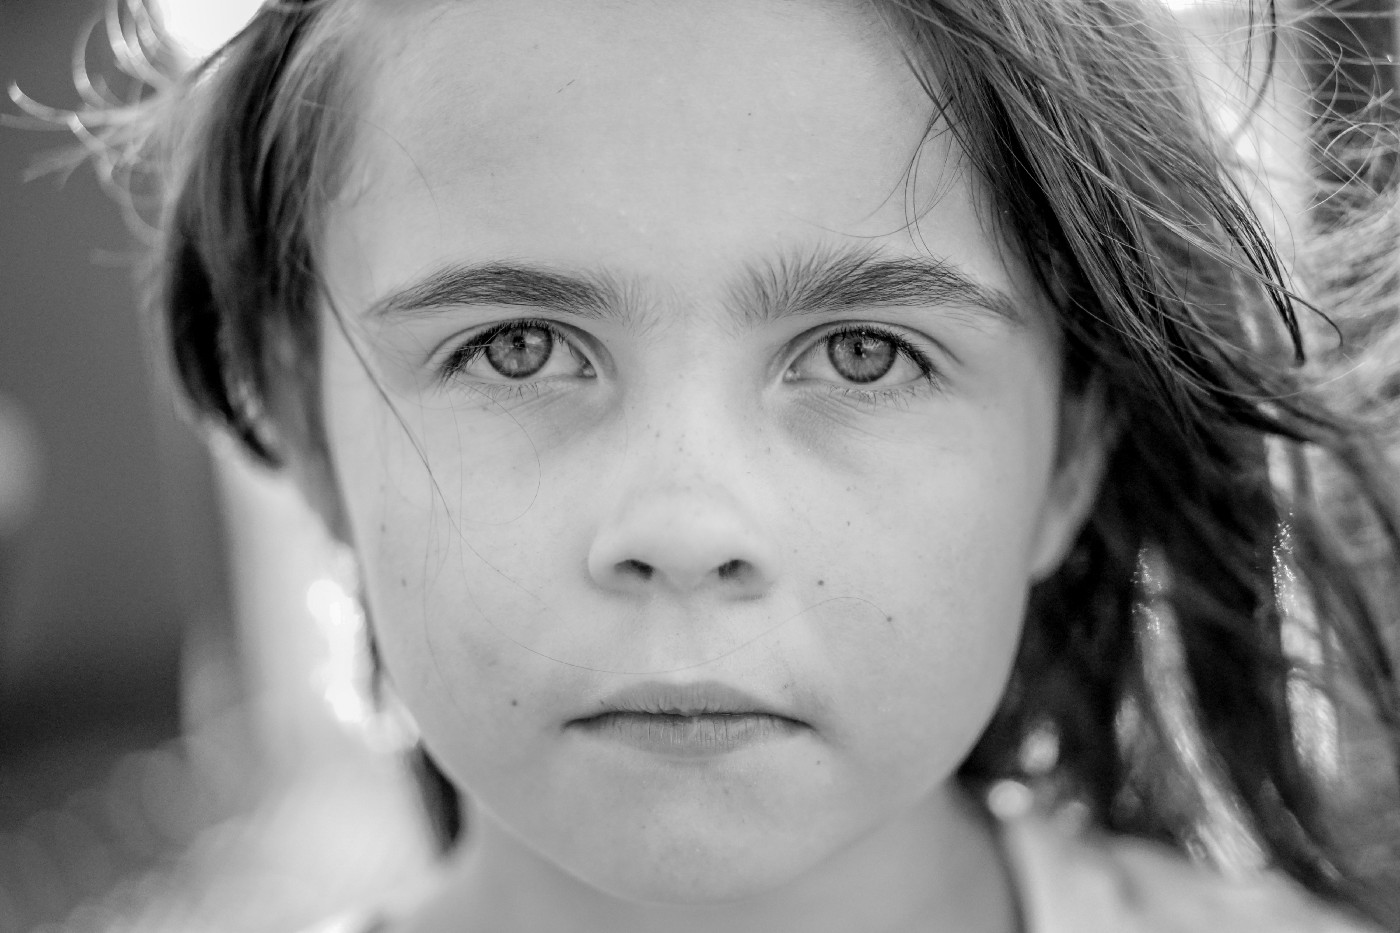 A young girl with sad eyes.